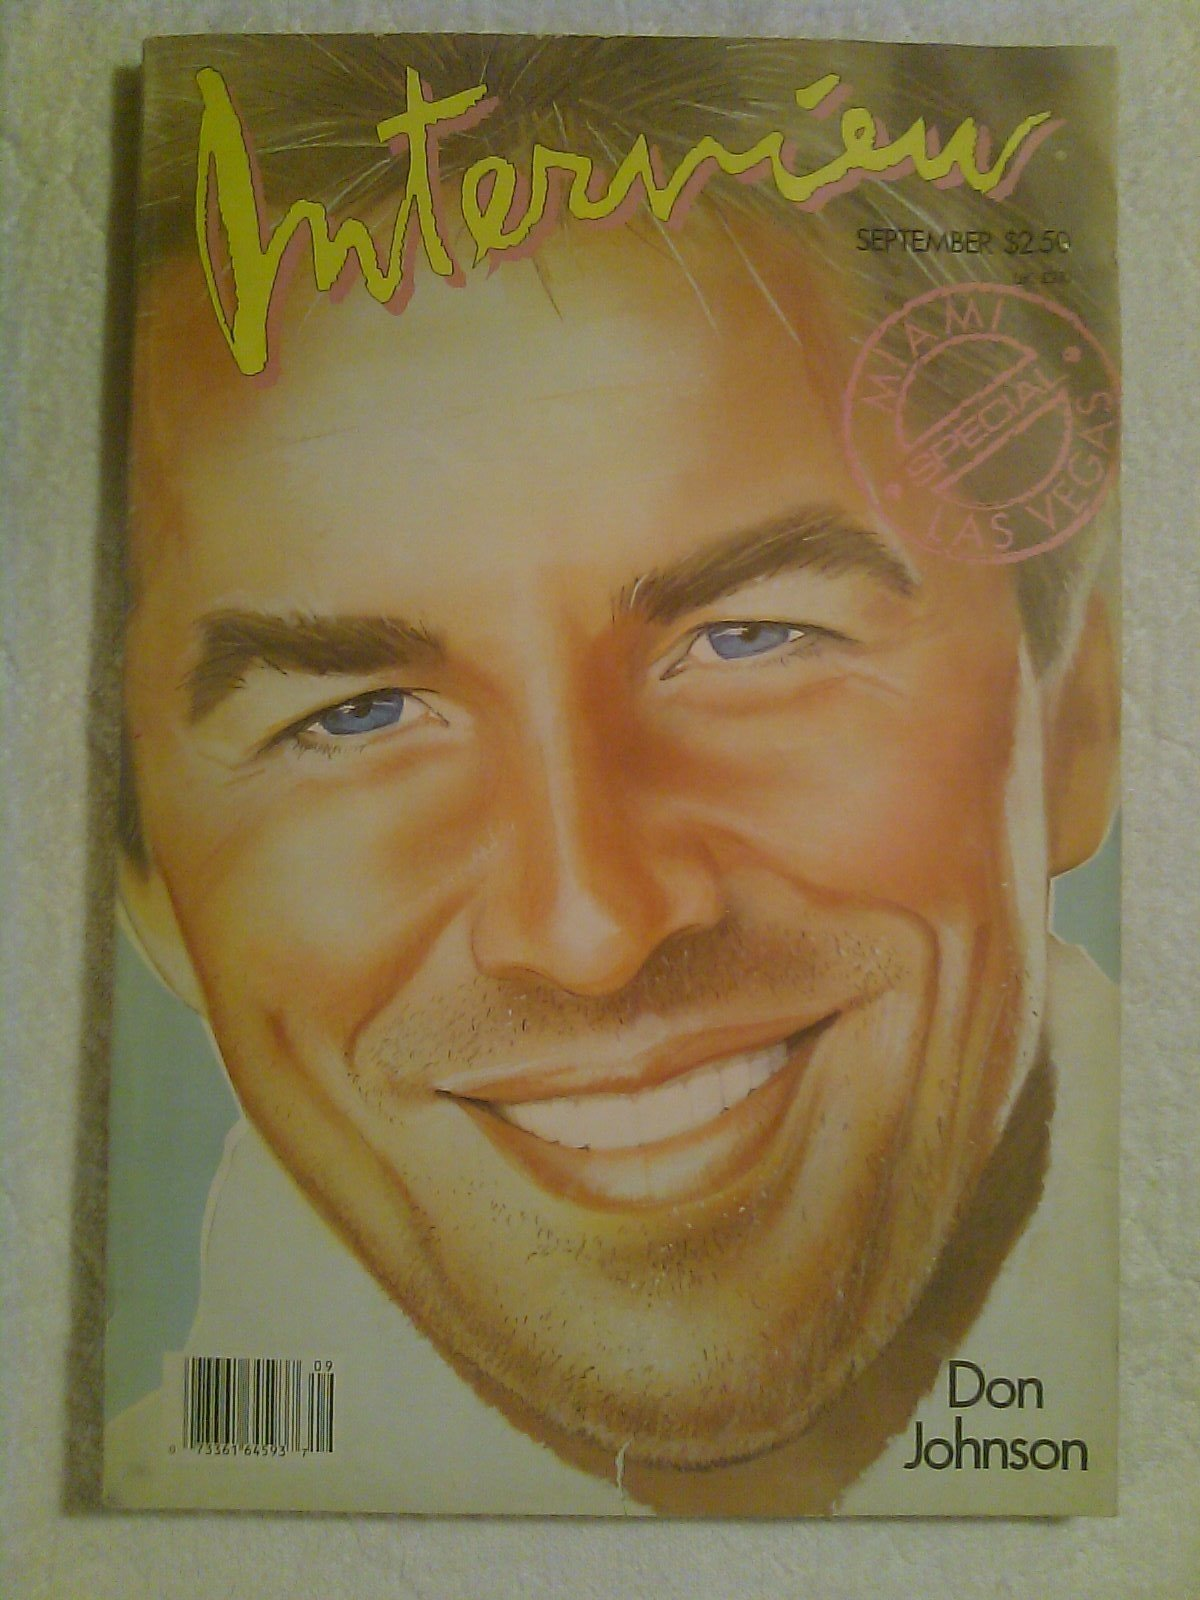 interview magazine don johnson front cover vol xvi no 9 1986 andy warhol